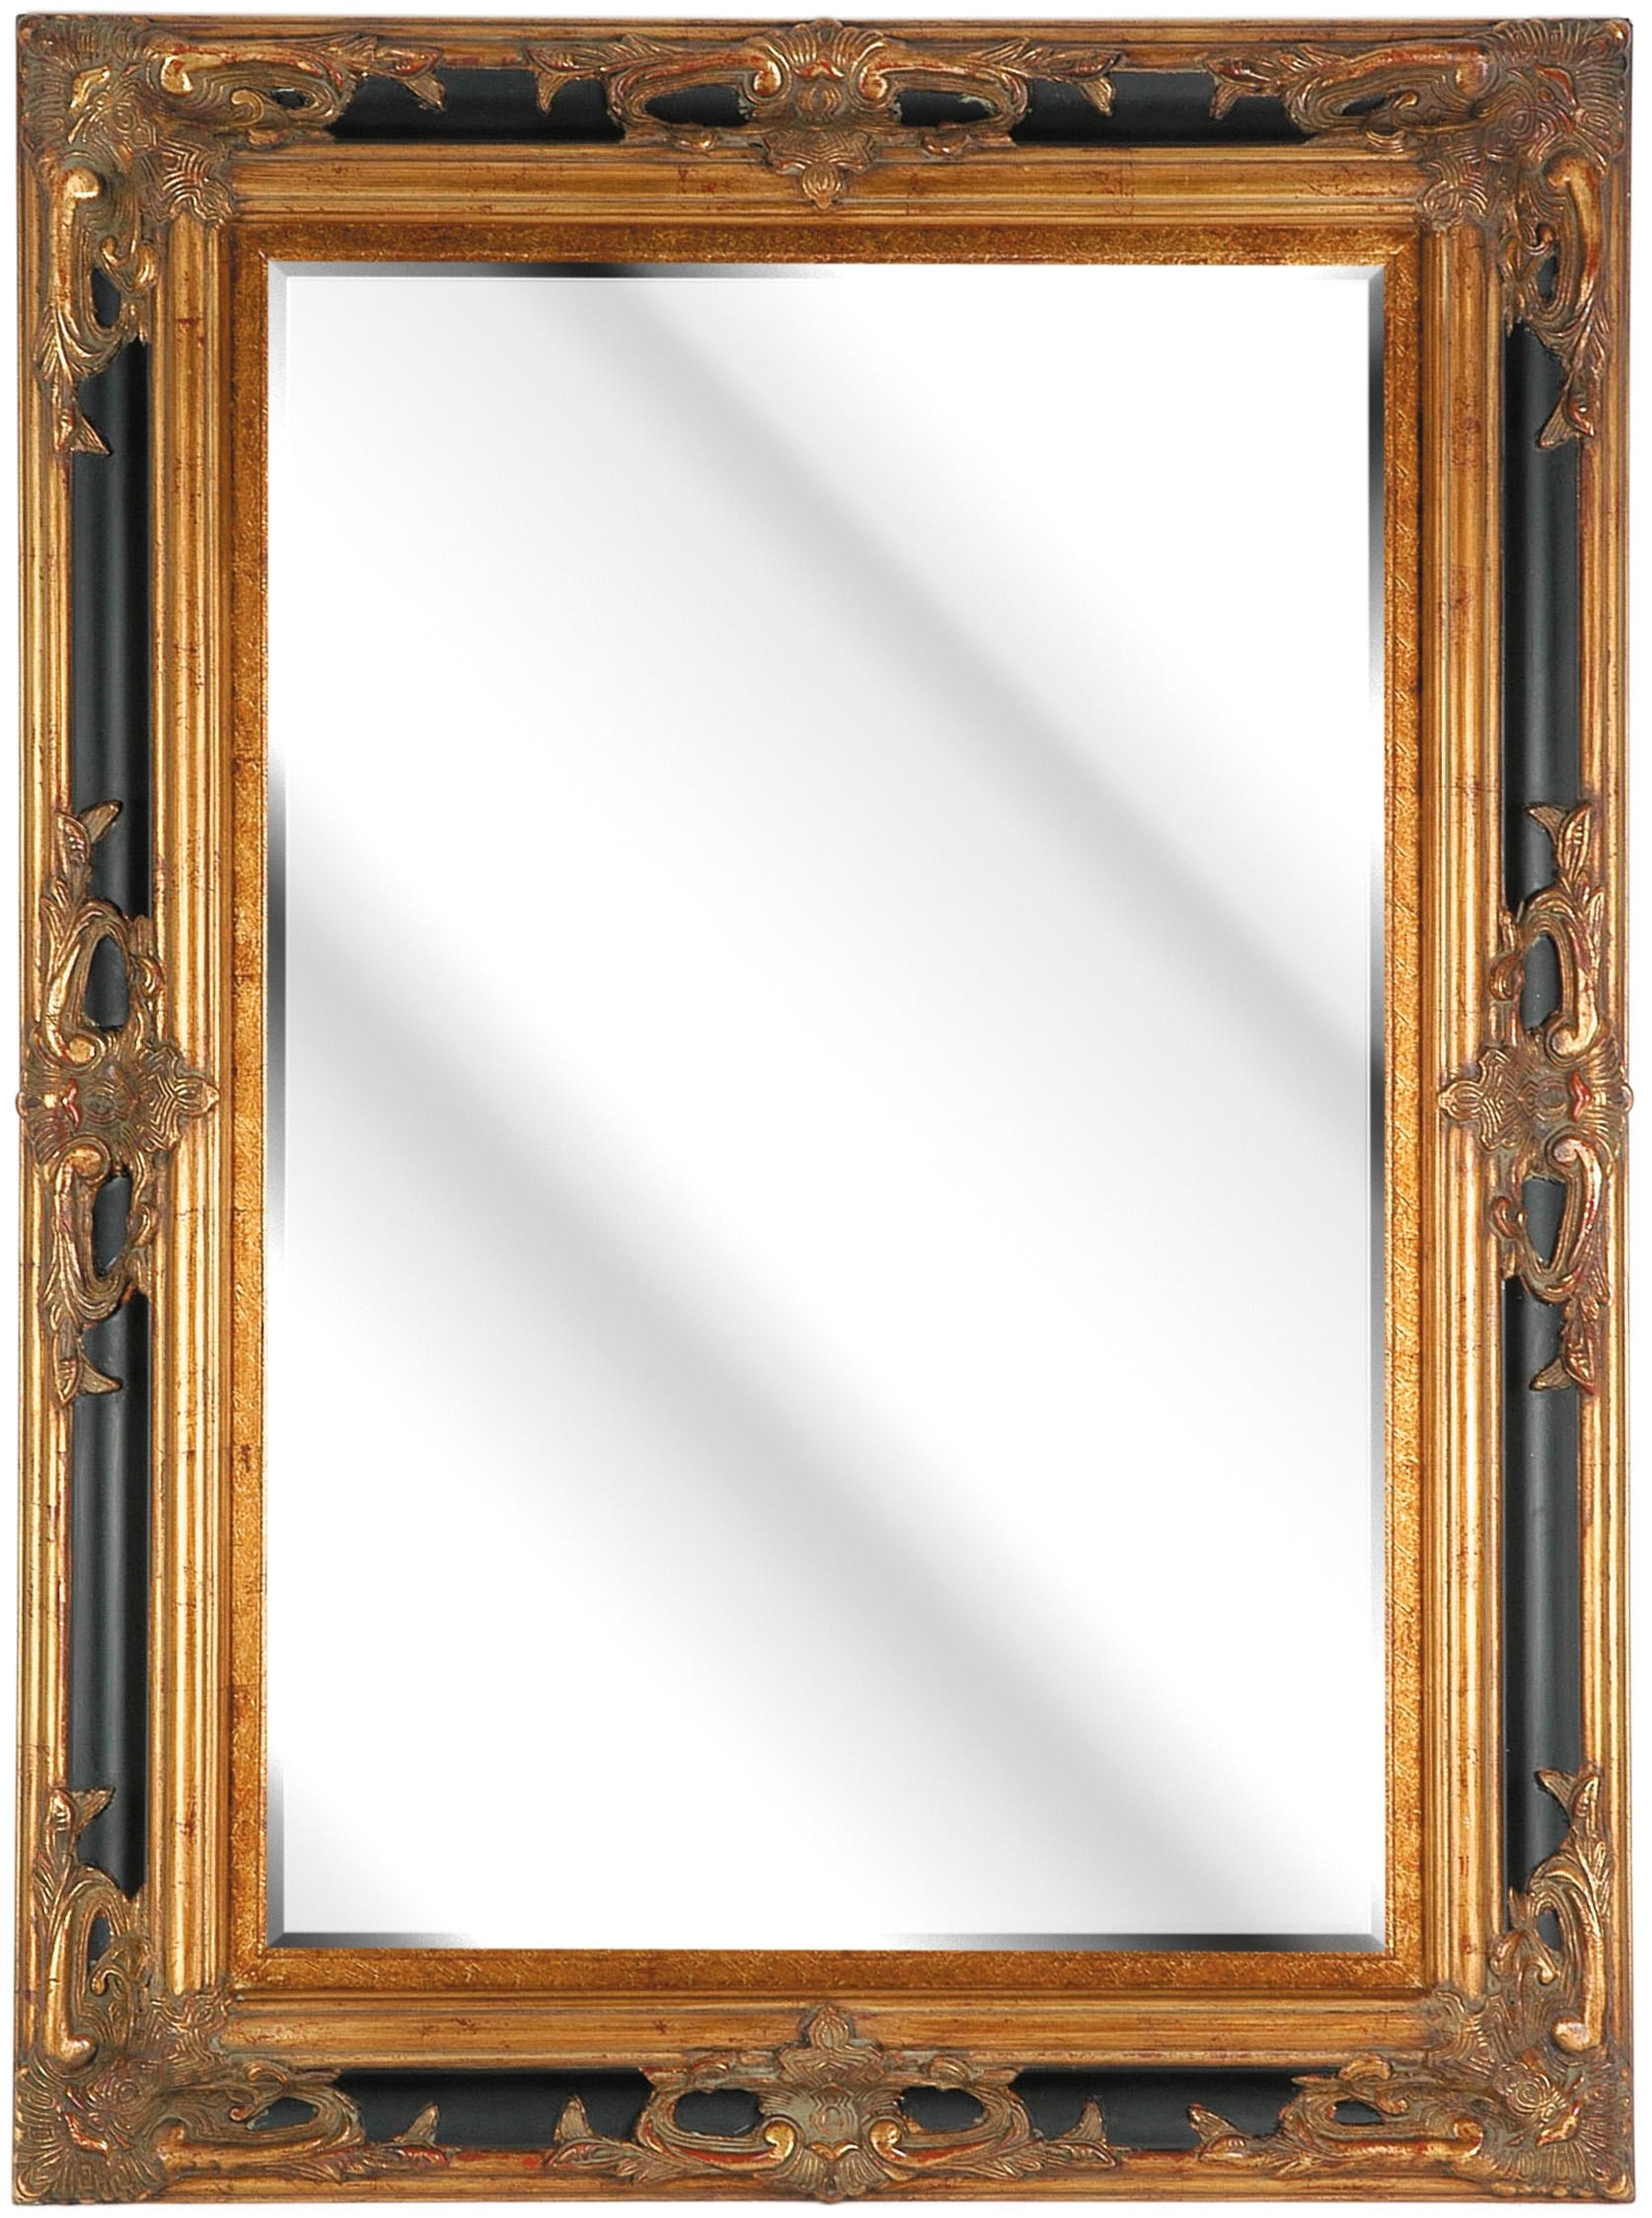 Black And Gold Framed Mirror 15 Awesome Exterior With Full Size Of In Square Gold Mirror (Image 1 of 20)